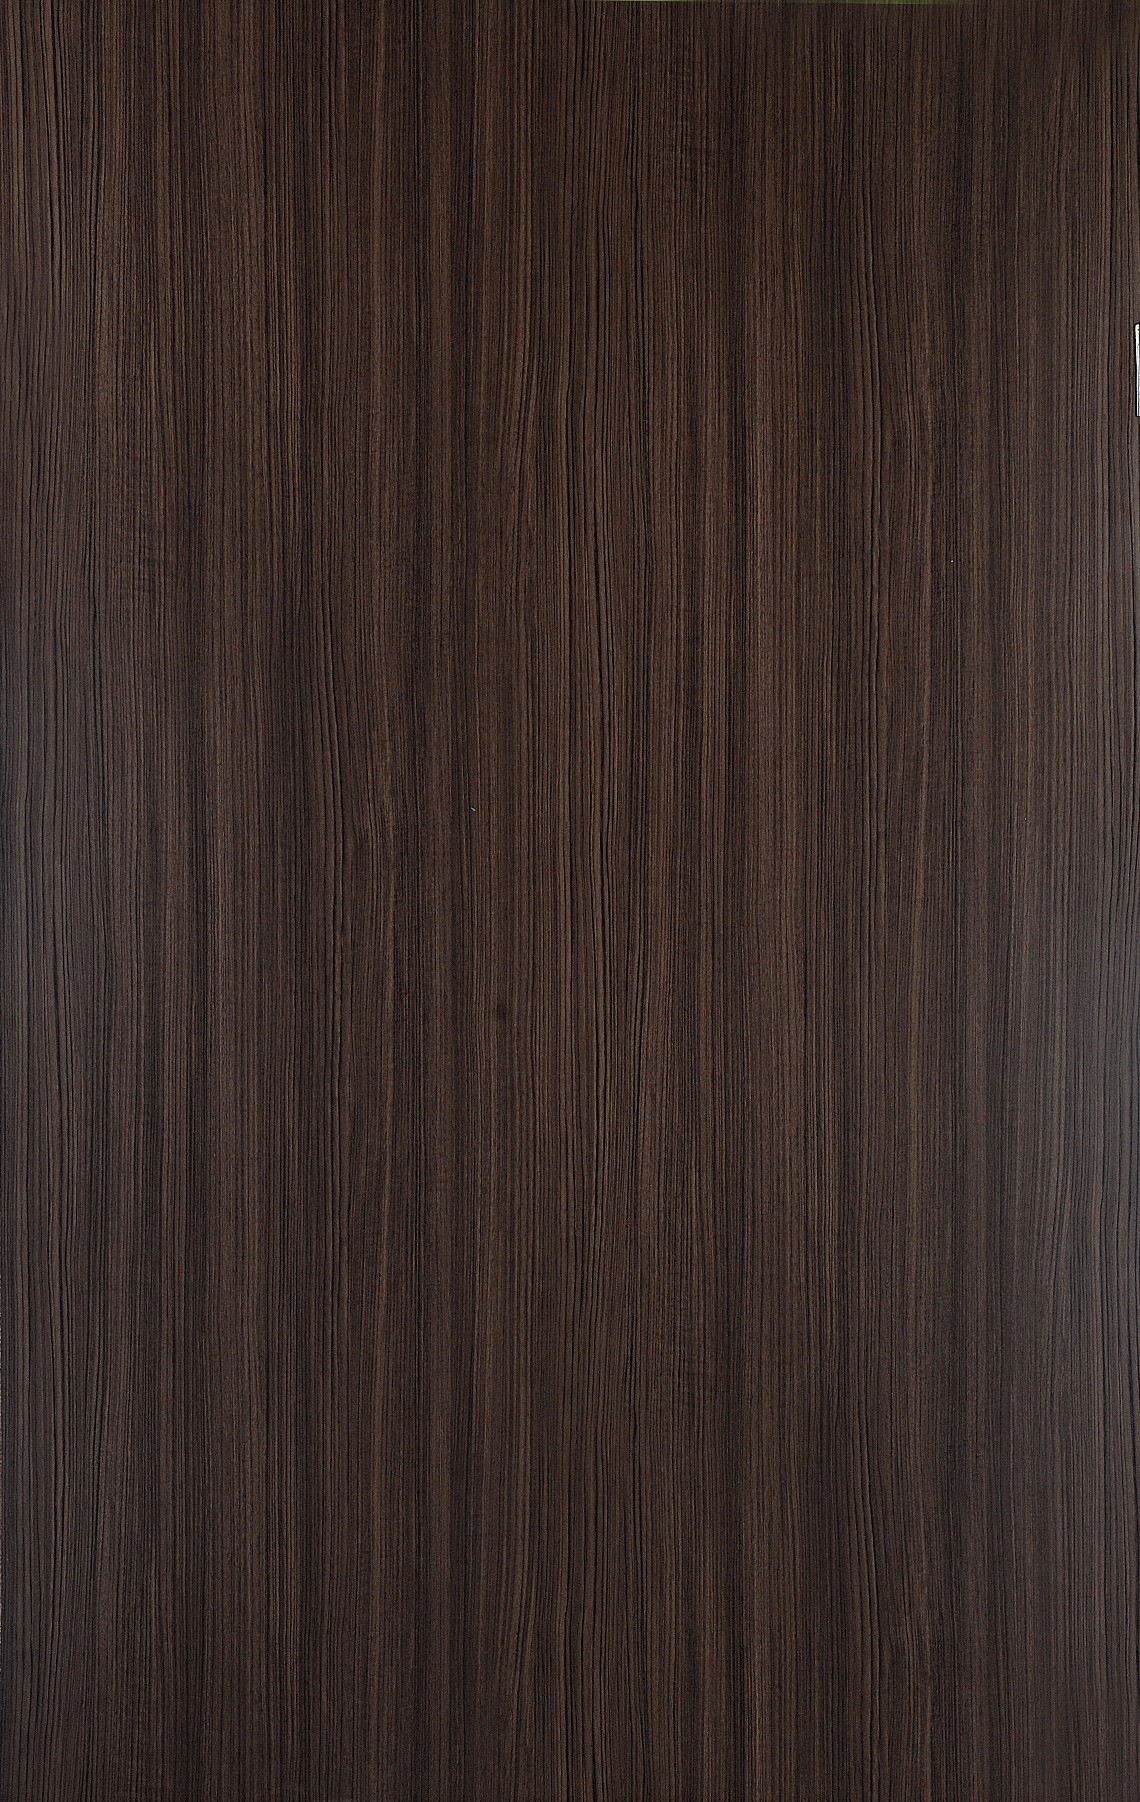 hardwood laminate flooring prices of decorative laminates sunmica 1 0 mm aica sunmica throughout teak all over ii